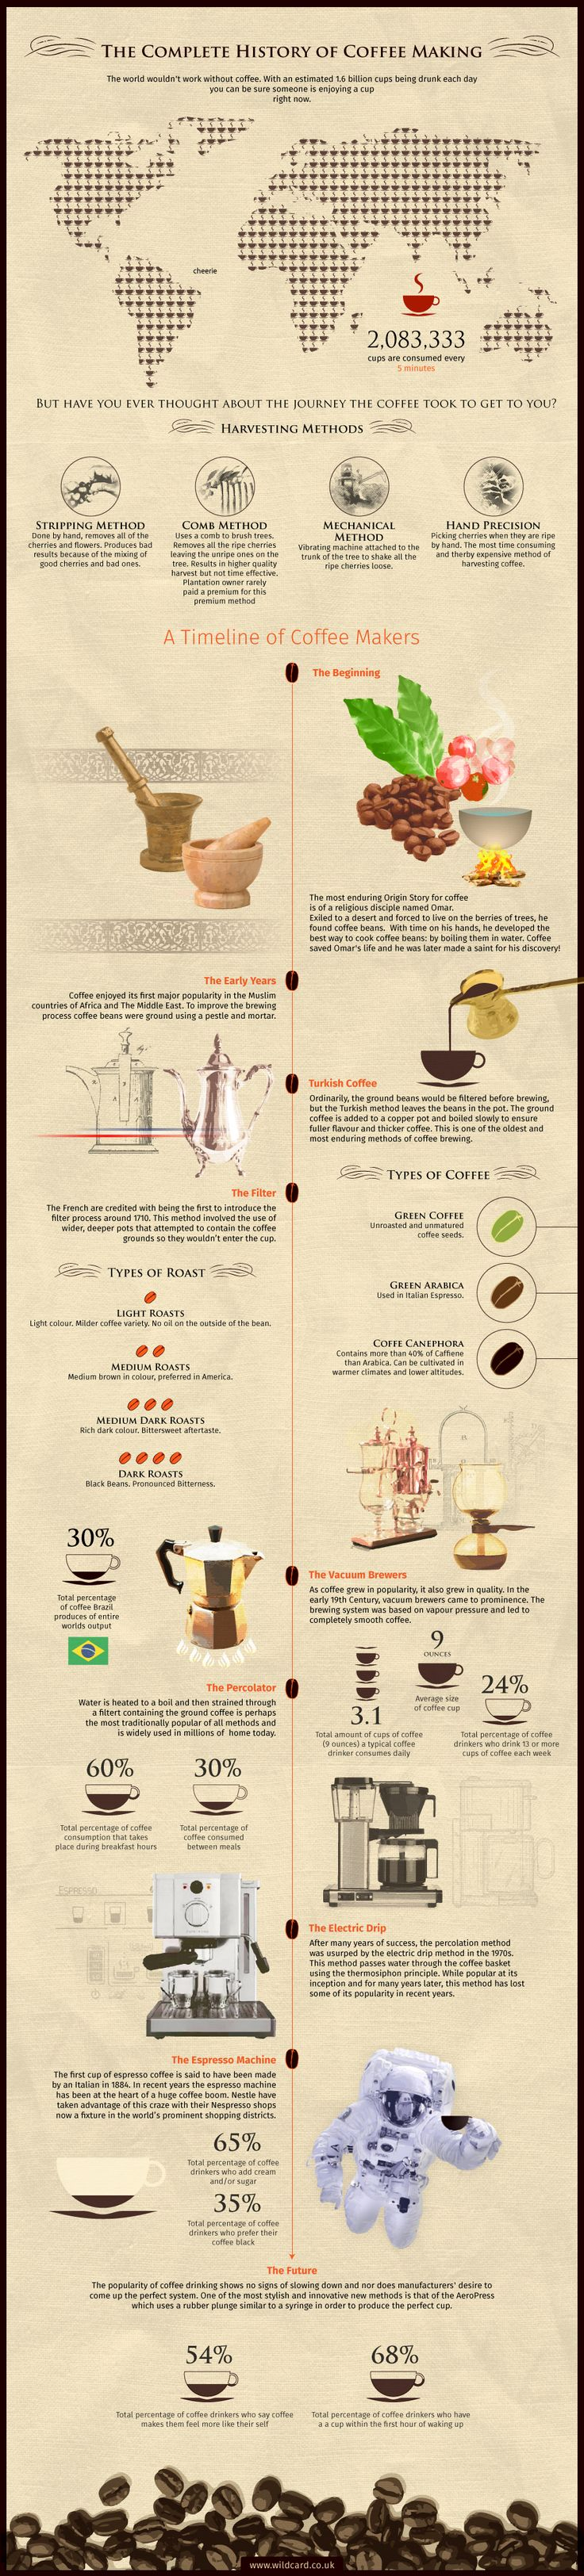 The Complete History of Coffee